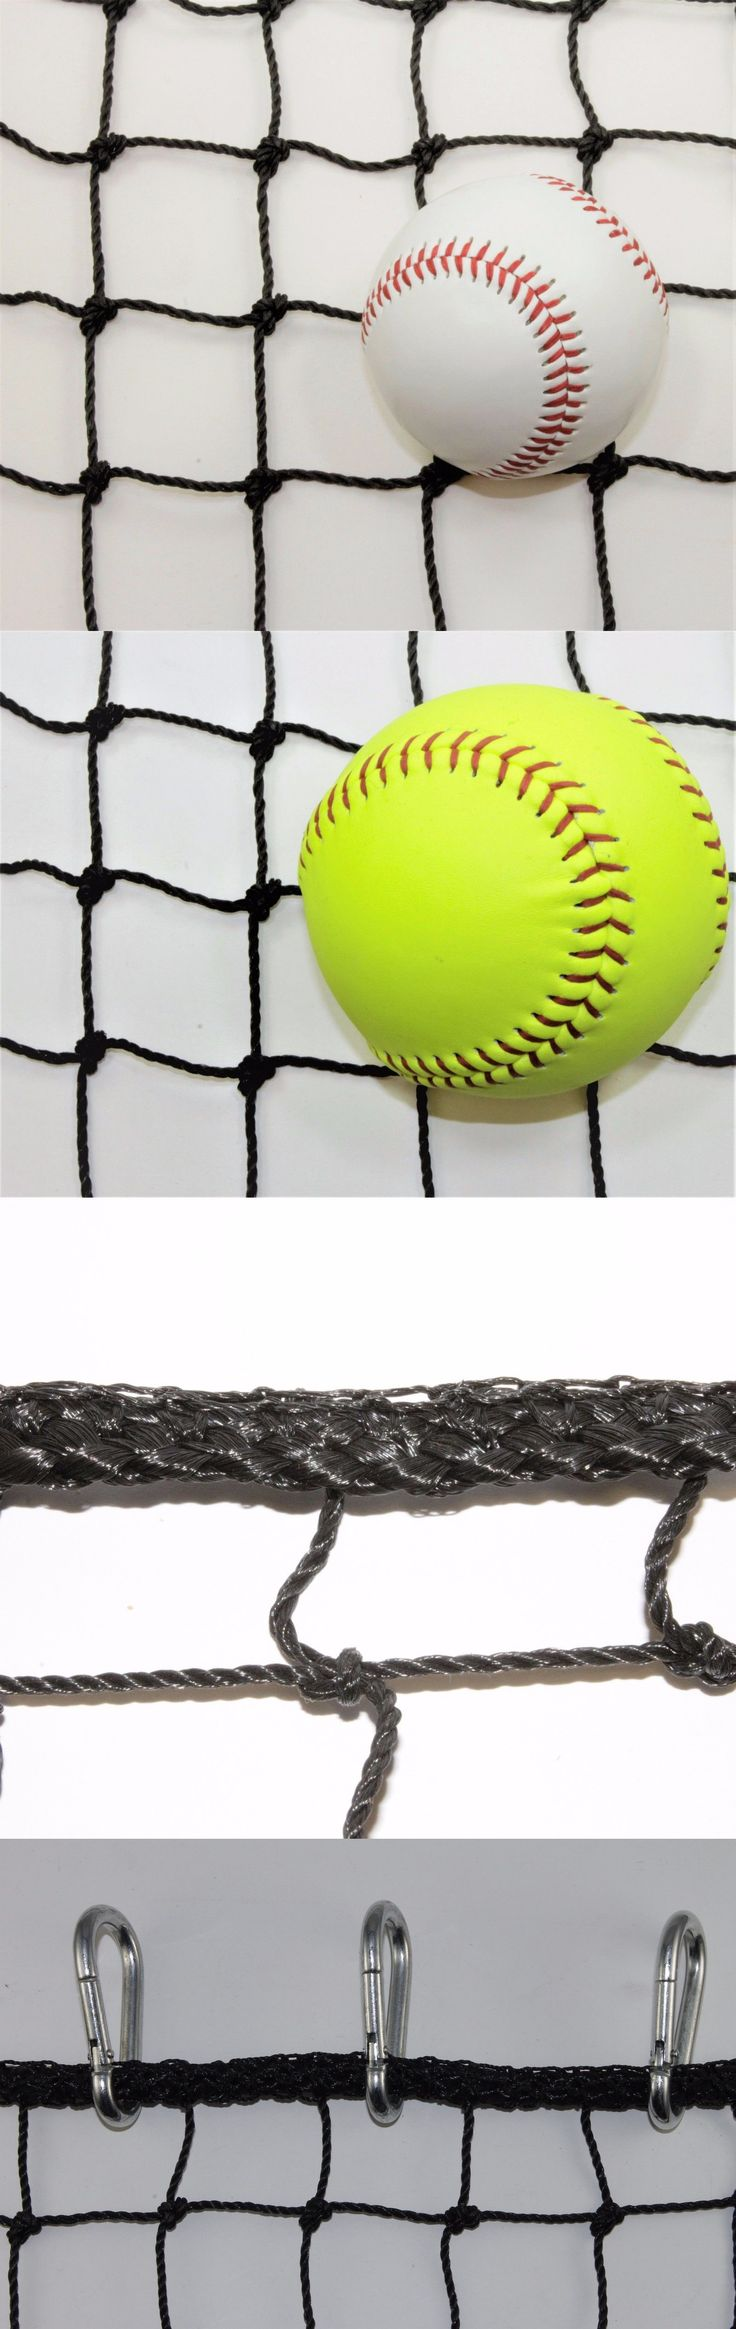 Batting Cages and Netting 50809: #42 - 20 X 30 Heavy Duty Impact Barrier Baseball Net Panel W 15 Carabiners -> BUY IT NOW ONLY: $112 on eBay!